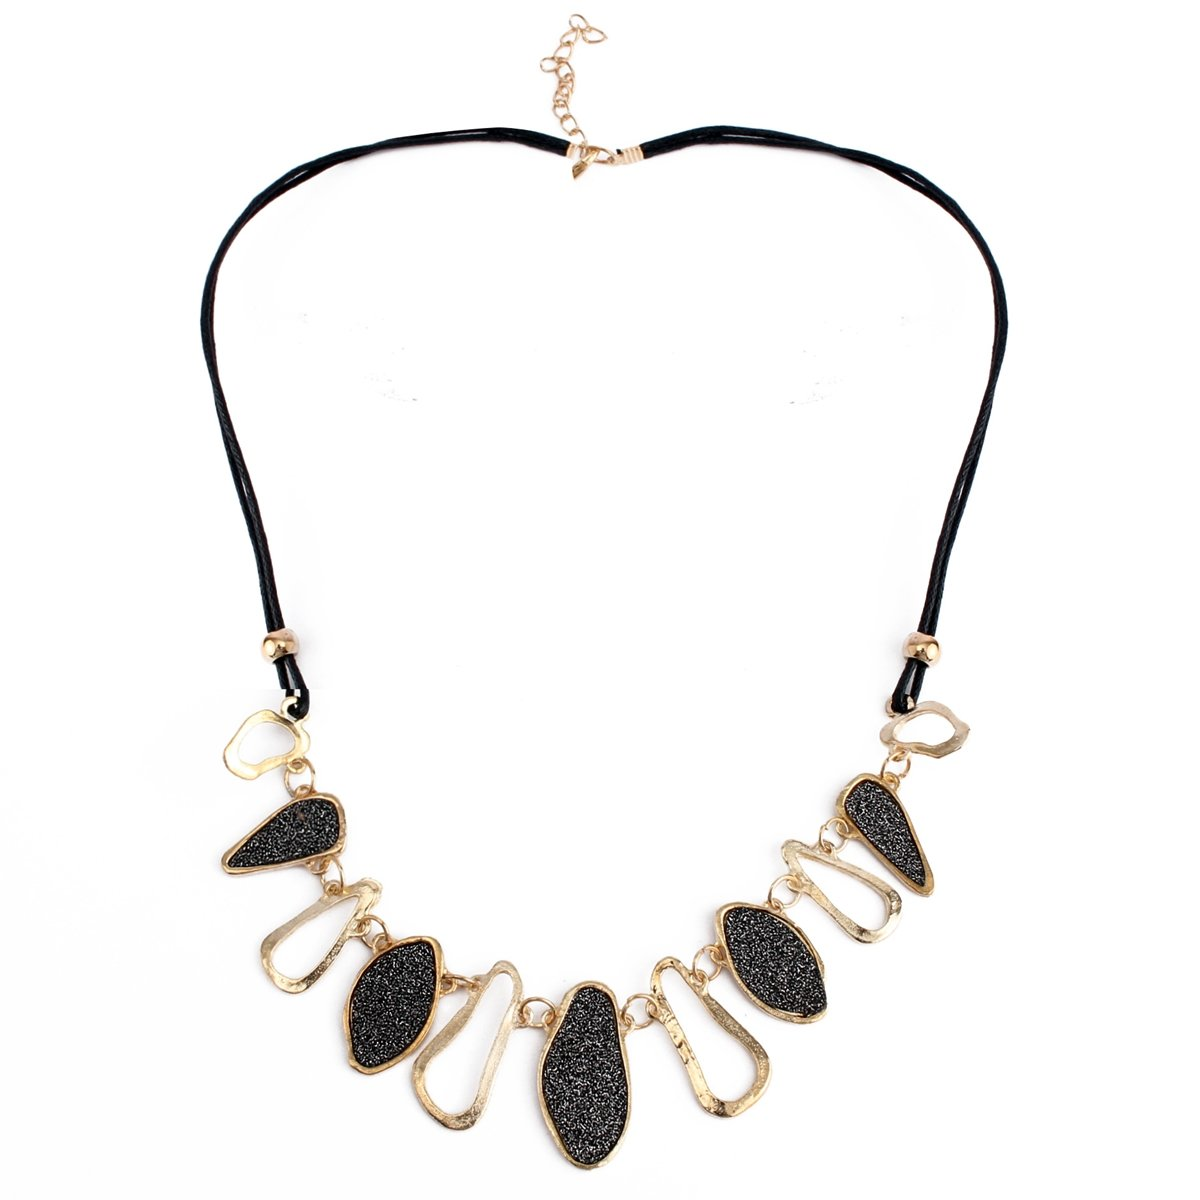 Frosted Irregular Geometric Collar Statement Necklace